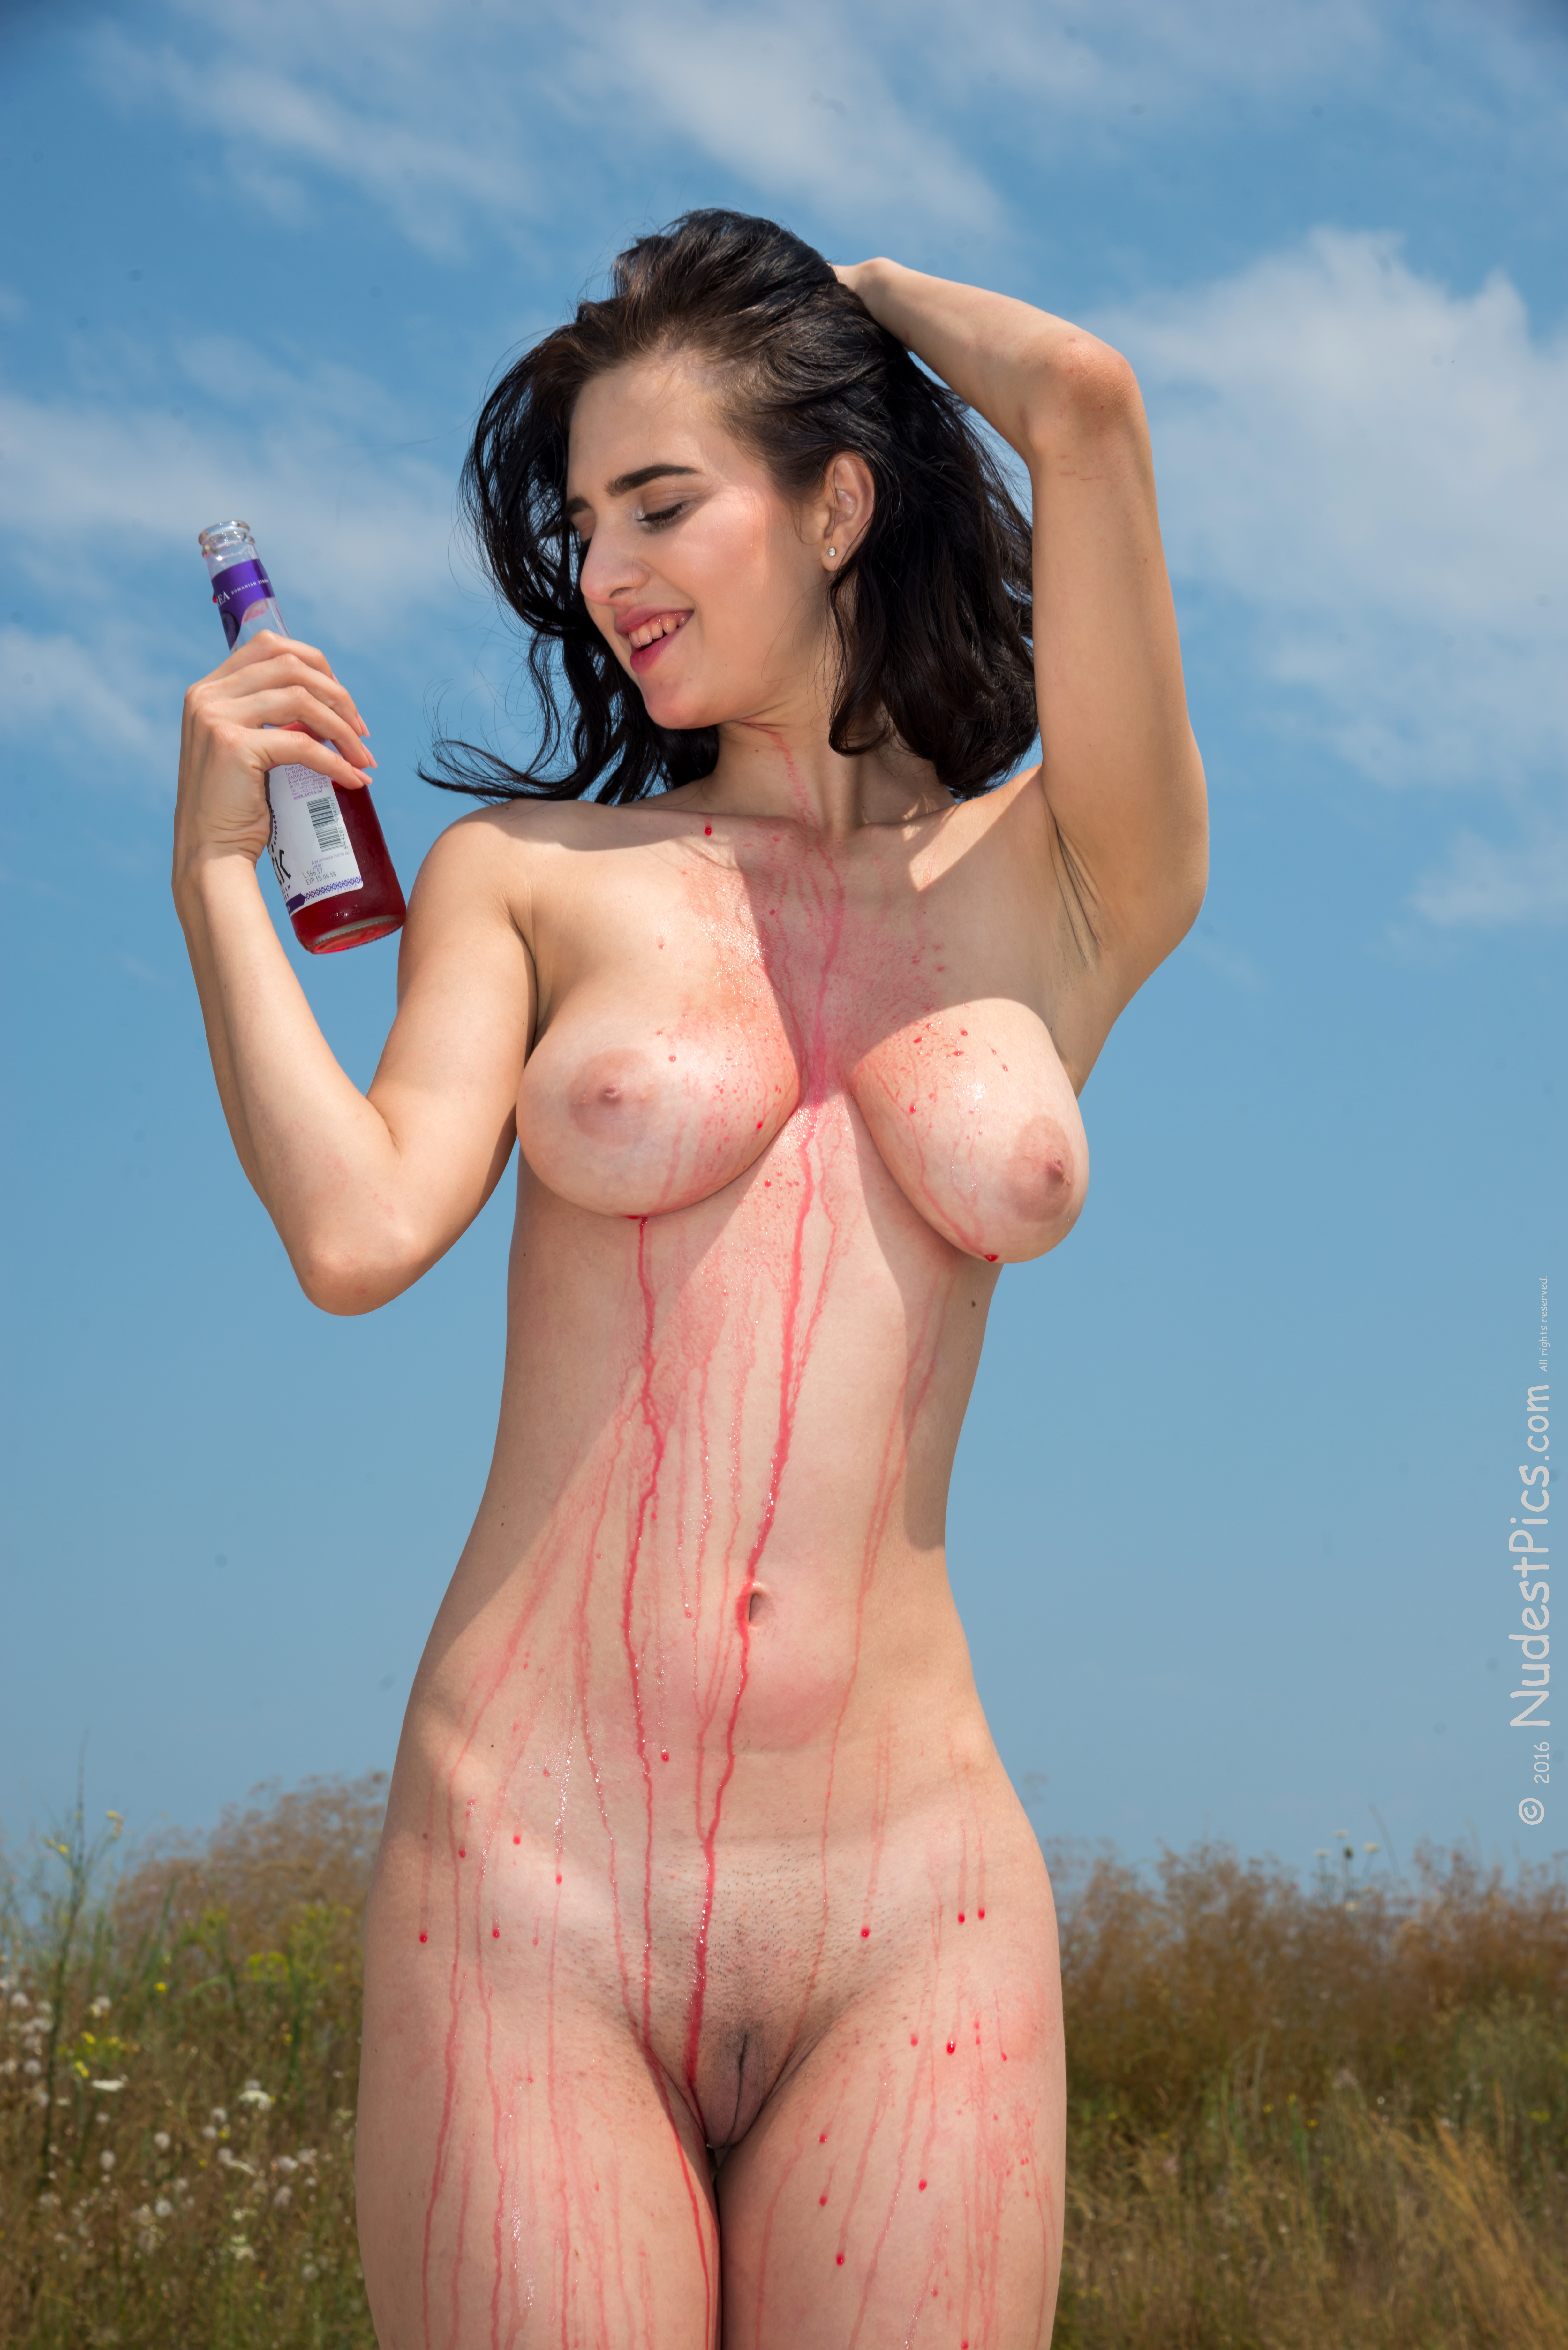 White Brunette Girl Spilling Red Drink on her Naked Body HD